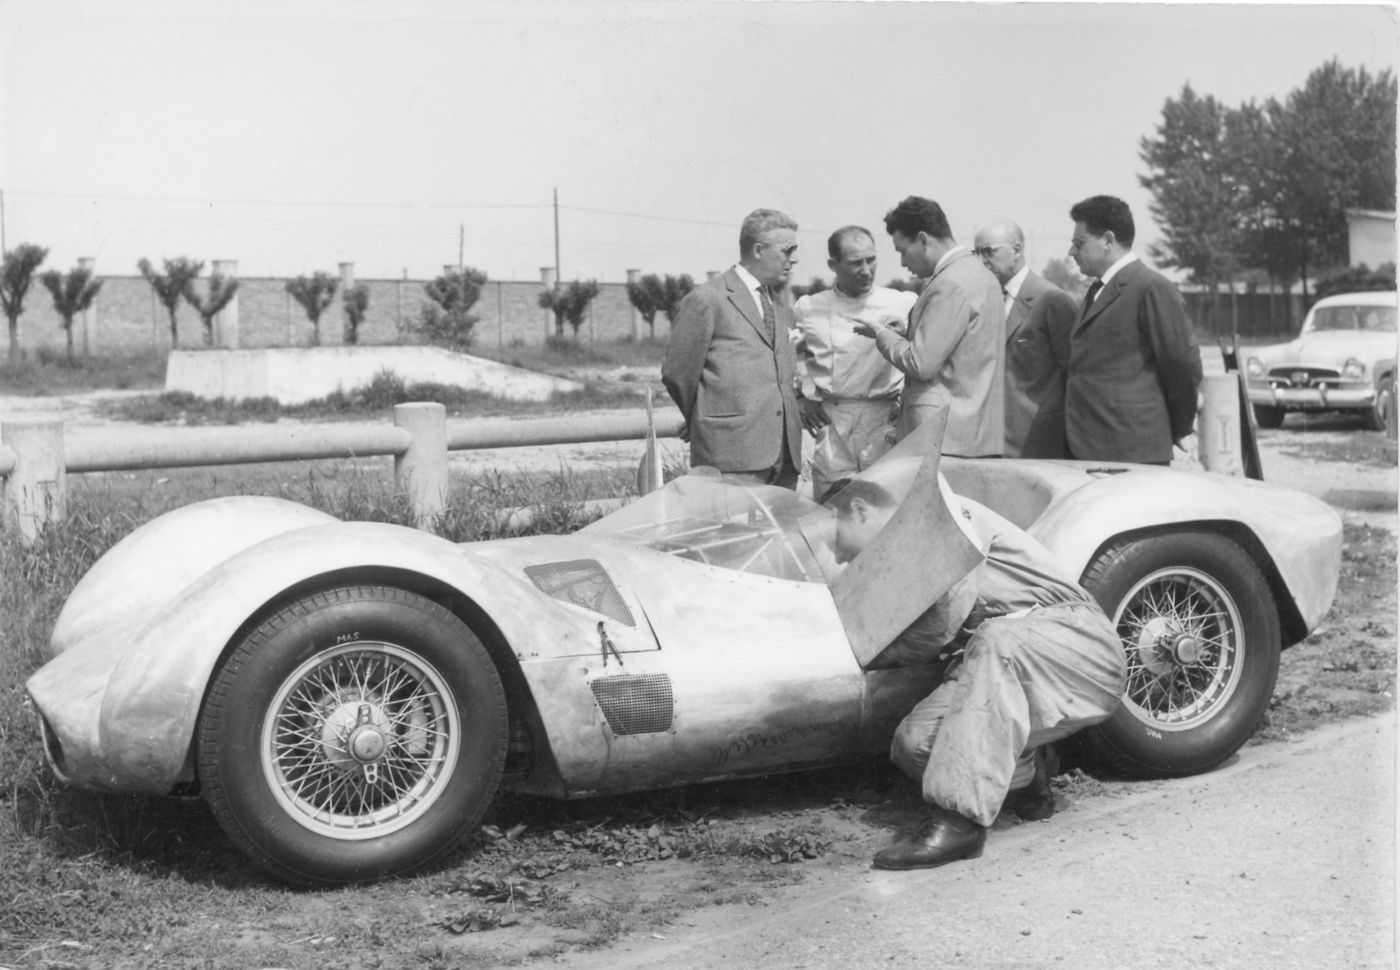 Tipo 60 - Birdcage 1959 - Test Stirling Moss Modena